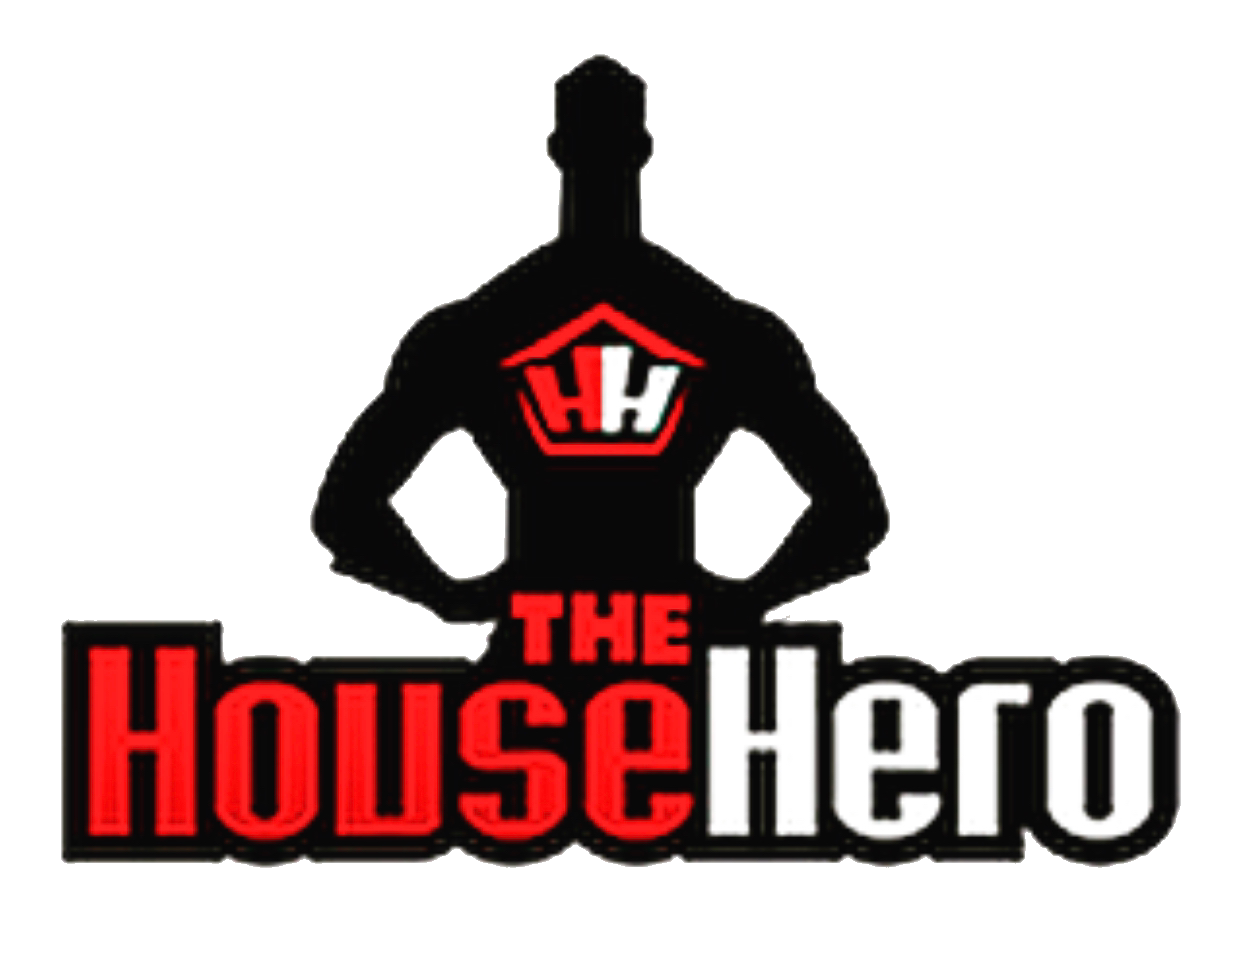 THE HOUSE HERO